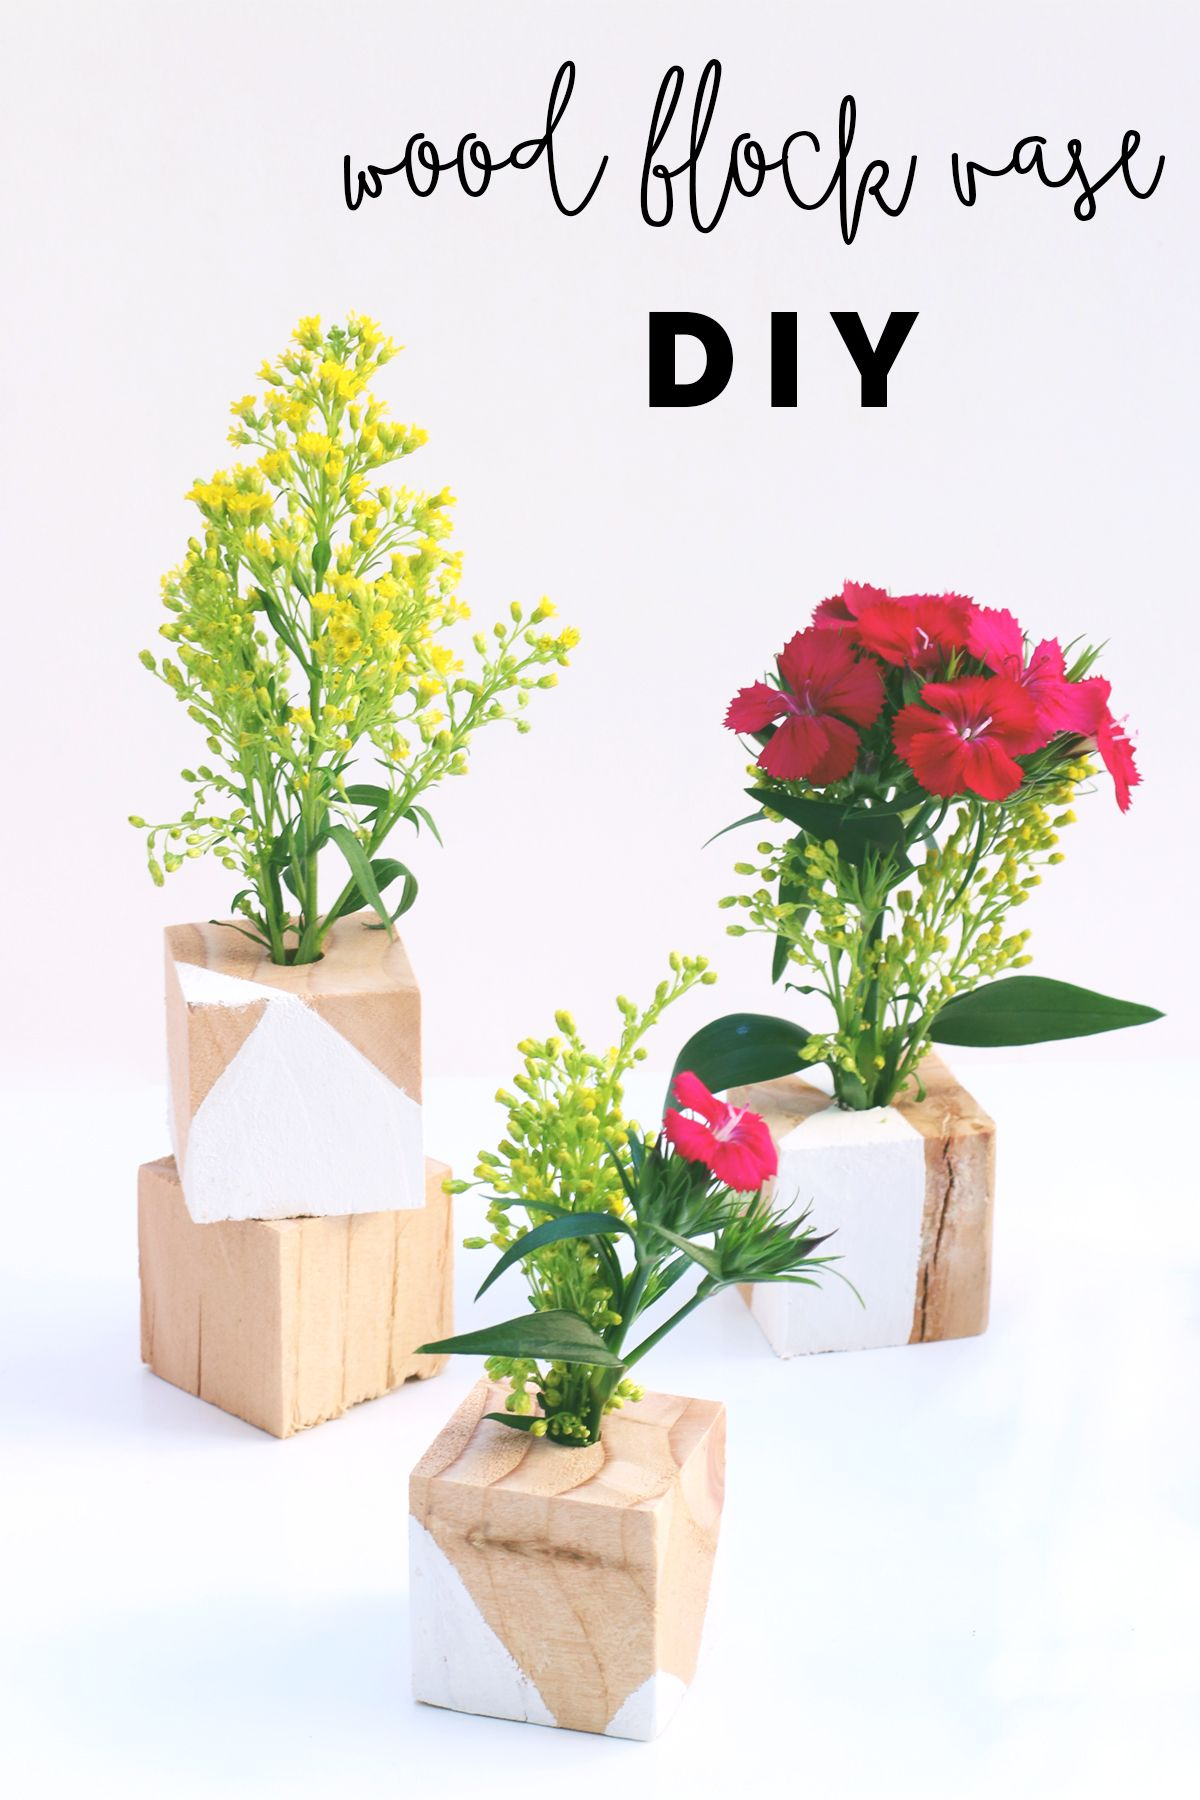 Wood Vase Diy - Love Plus Color